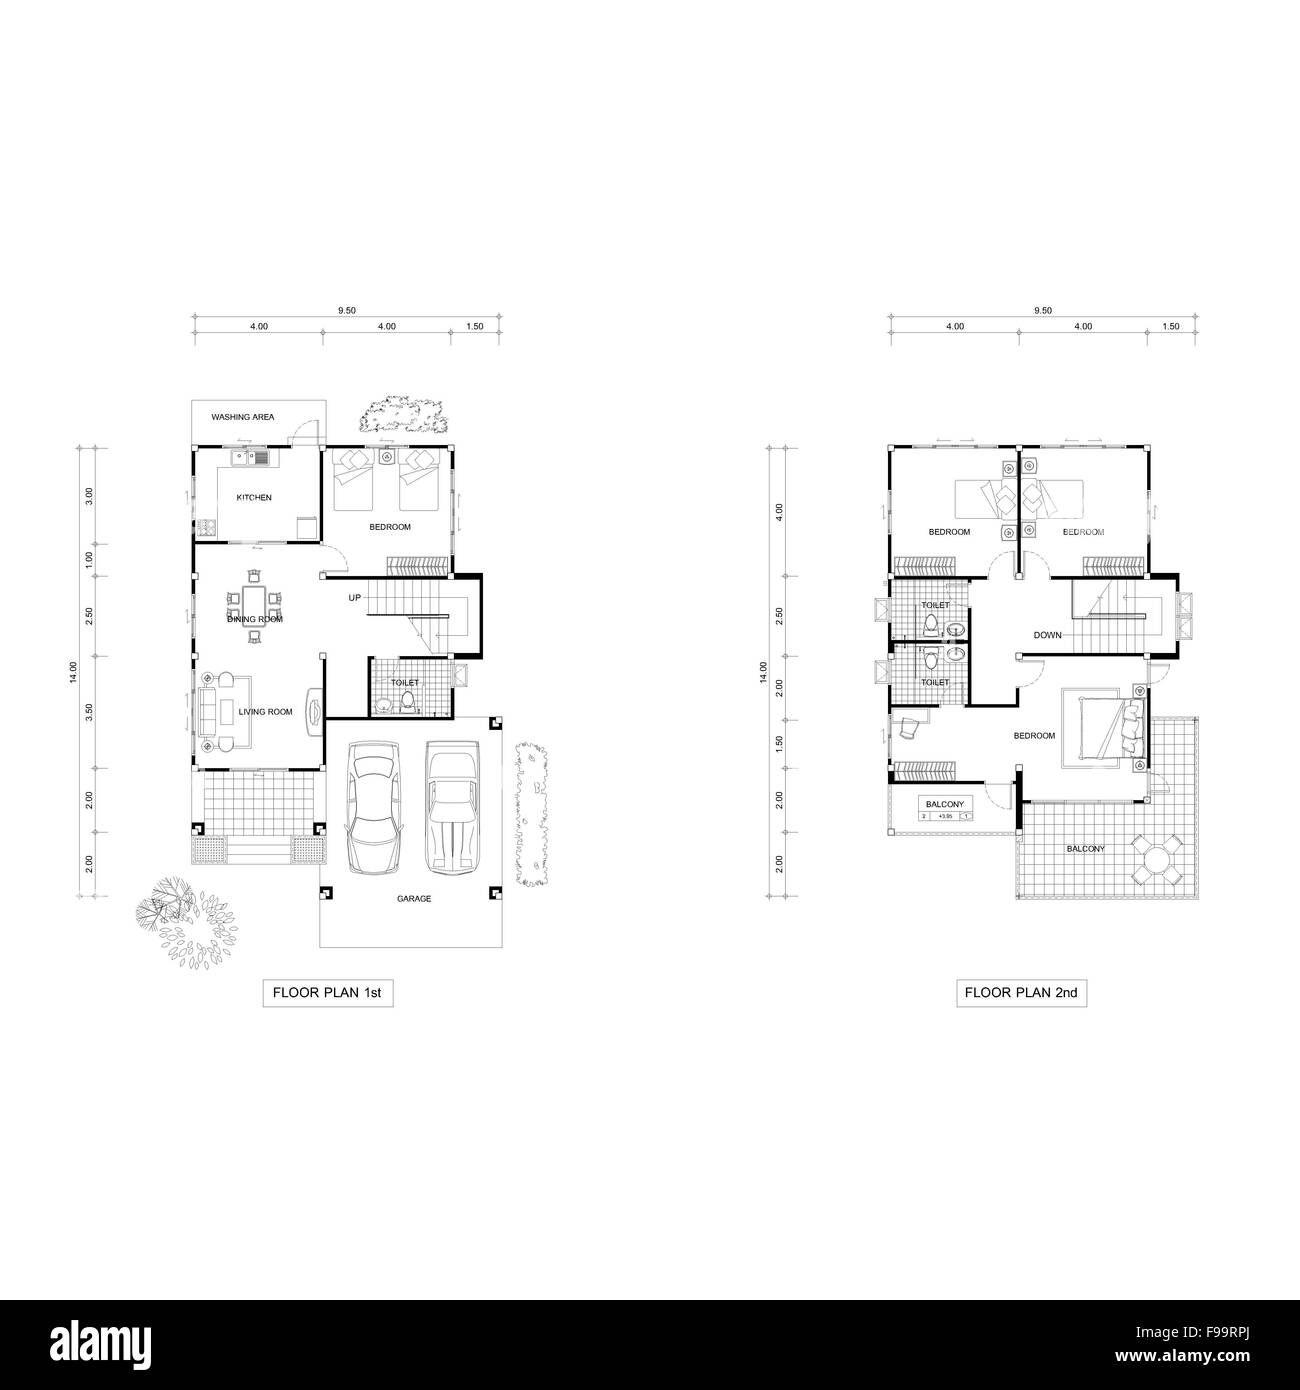 Architecture plan drawing design house, Plans downstairs and Stock on luther house, numbers house, hidden house, haven house, united kingdom house, poirot house, toast house, copper house, the mill house, hunted house, vikings house, arrow house, monroe house, the village house, sherlock holmes house, slit house, portlandia house, the big bang theory house, revenge house, sleepy hollow house,